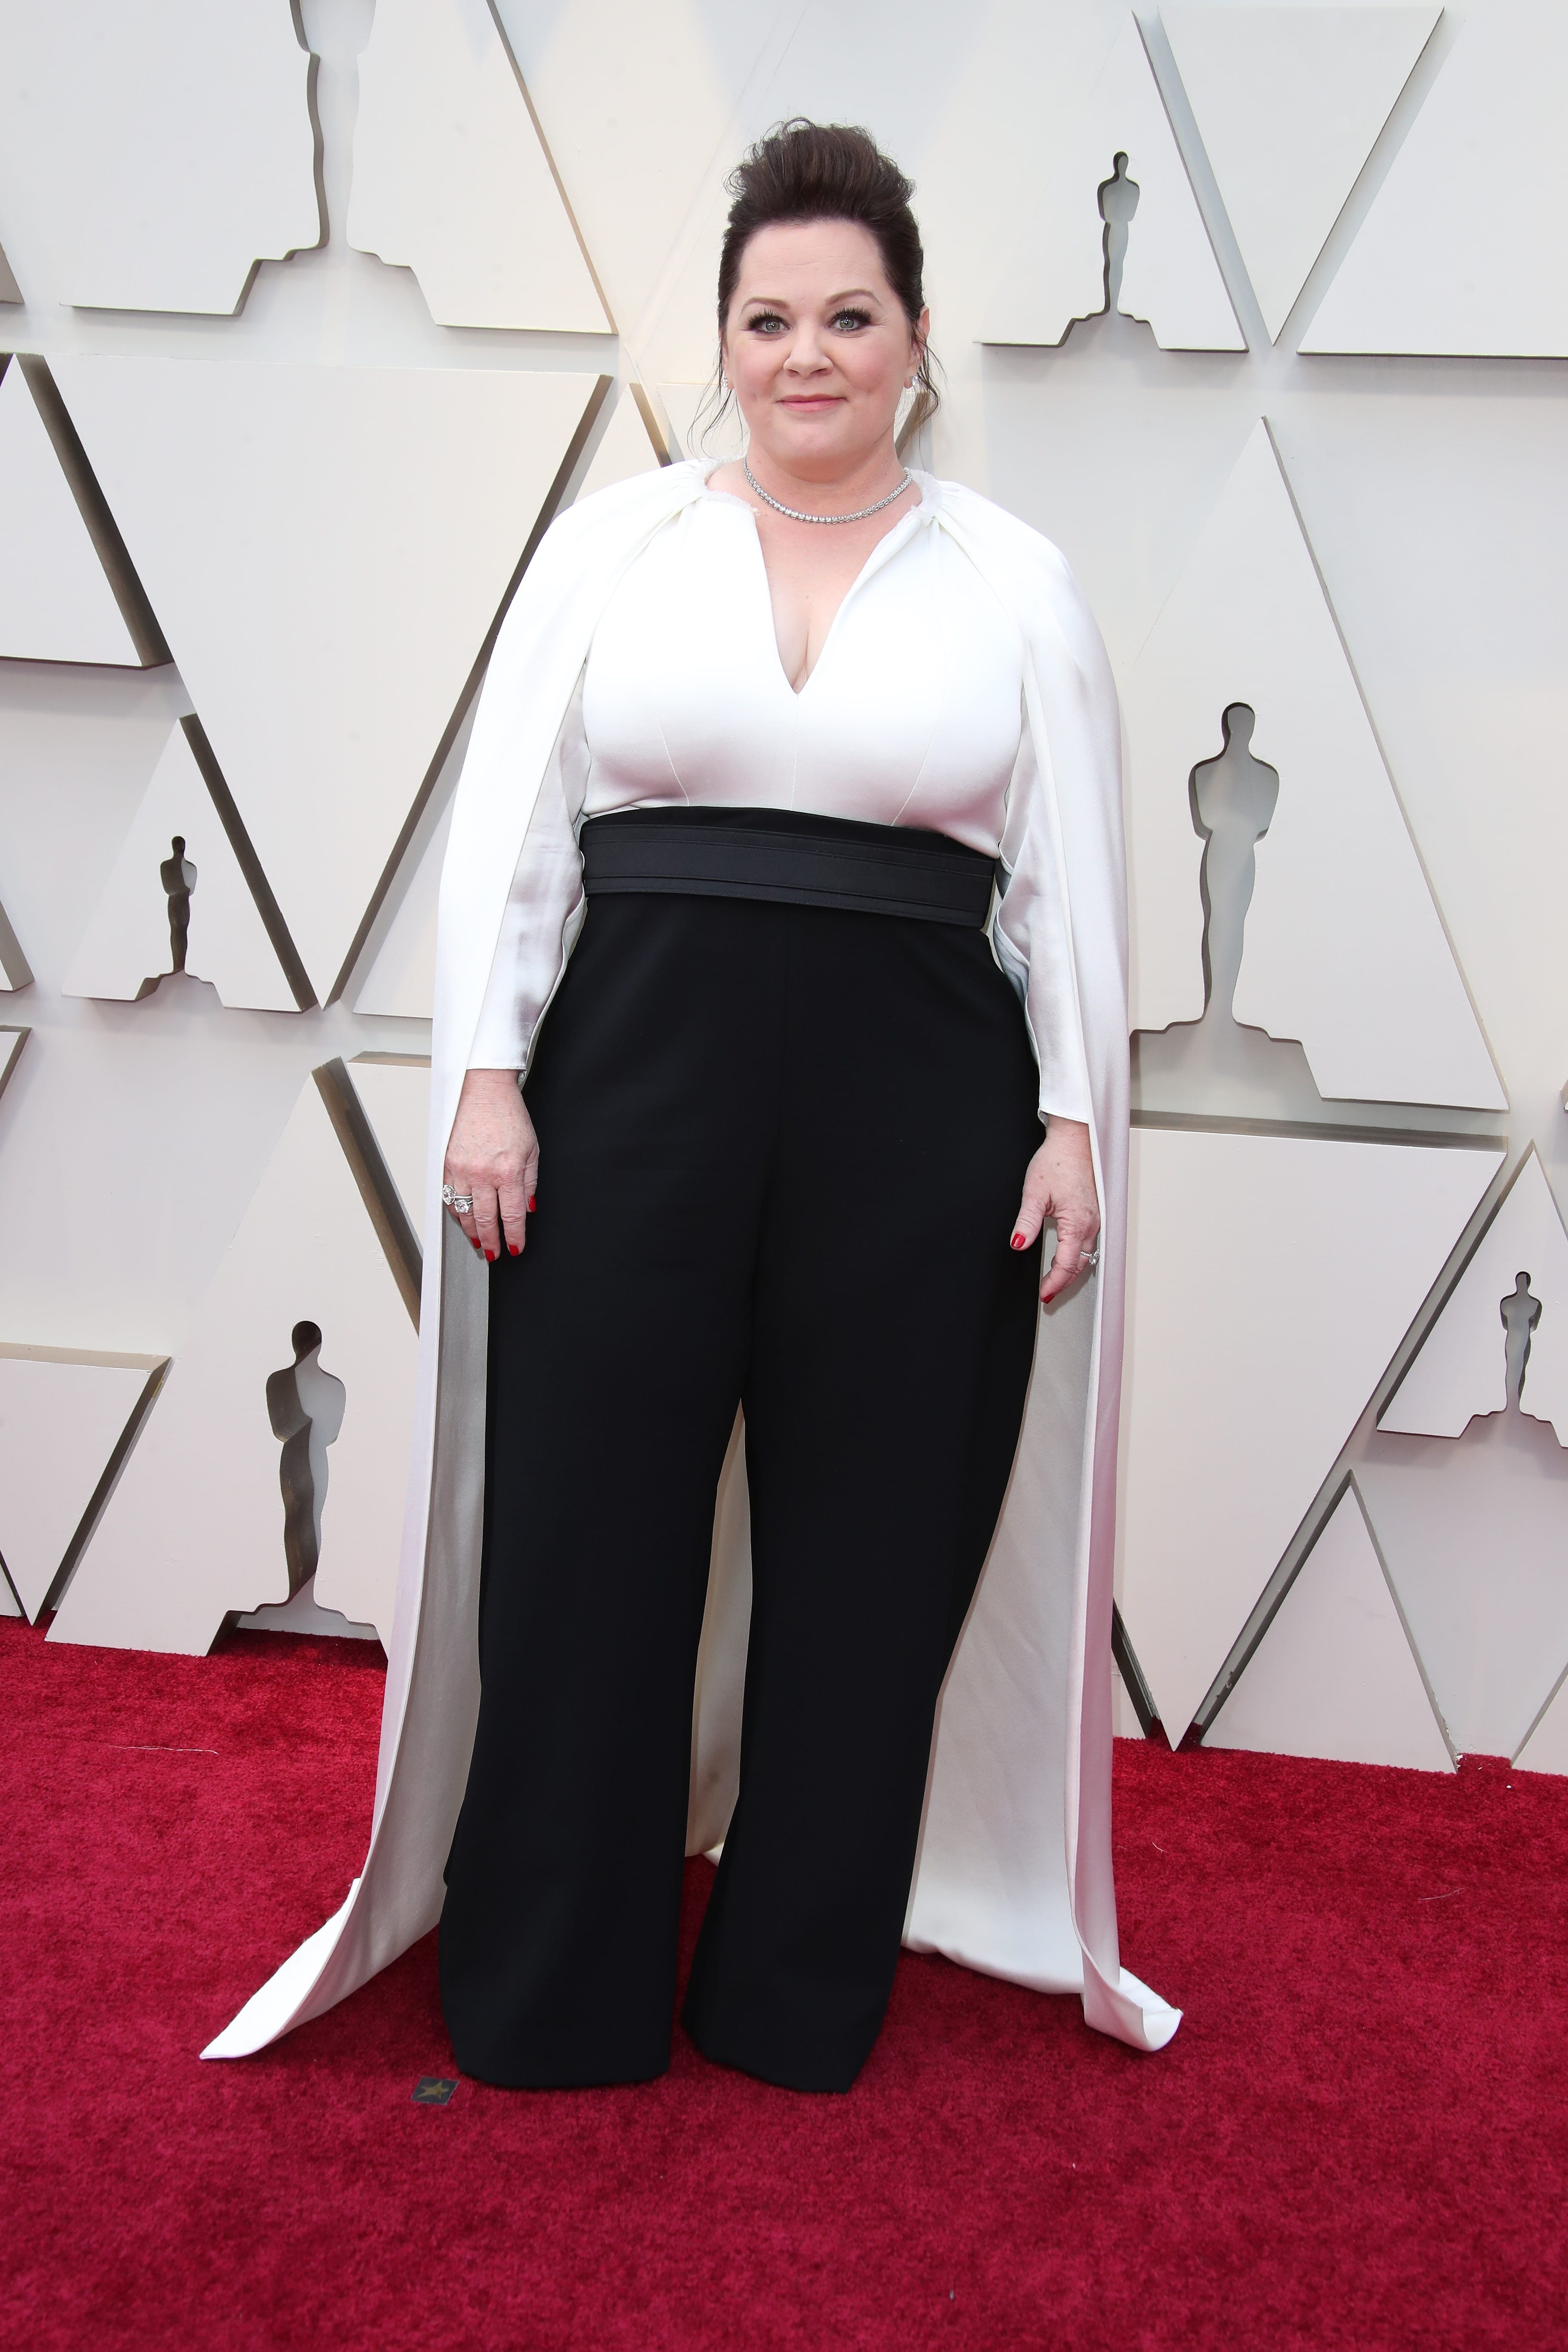 February 24, 2019; Los Angeles, CA, USA; Melissa McCarthy arrives at the 91st Academy Awards at the Dolby Theatre. Mandatory Credit: Dan MacMedan-USA TODAY NETWORK (Via OlyDrop)